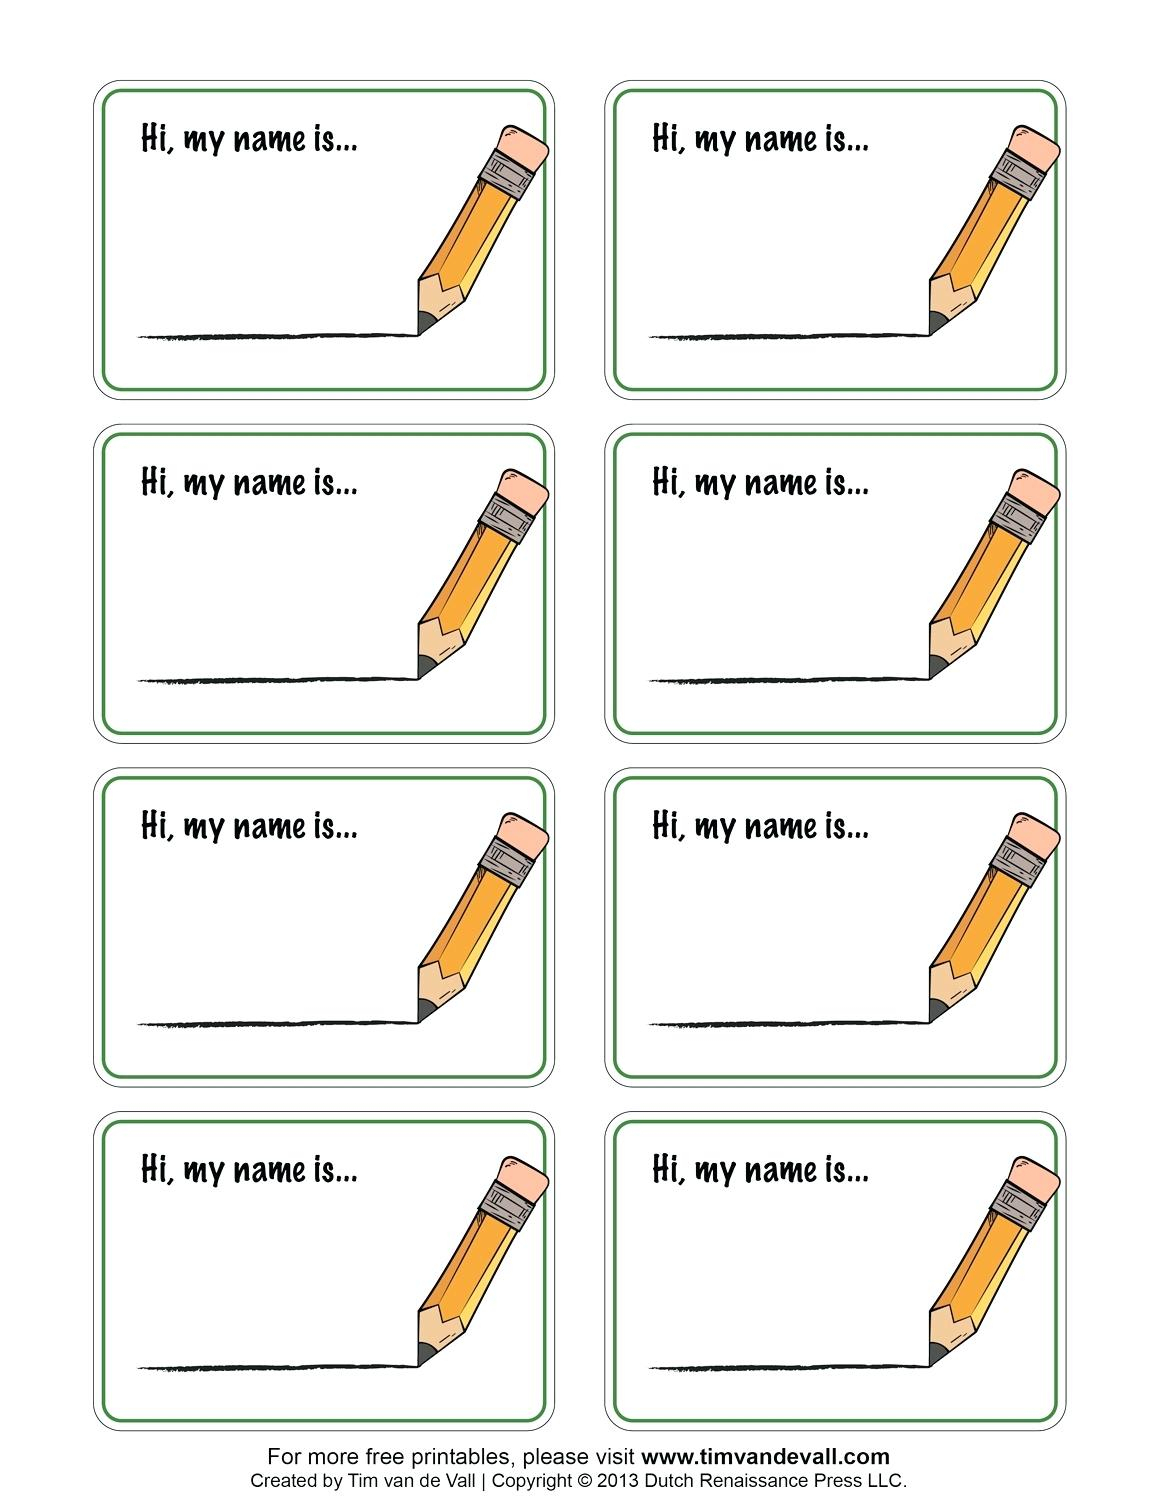 Free Printable Names Free Printable Name Tags Template Free - Free Printable Name Tags For Preschoolers